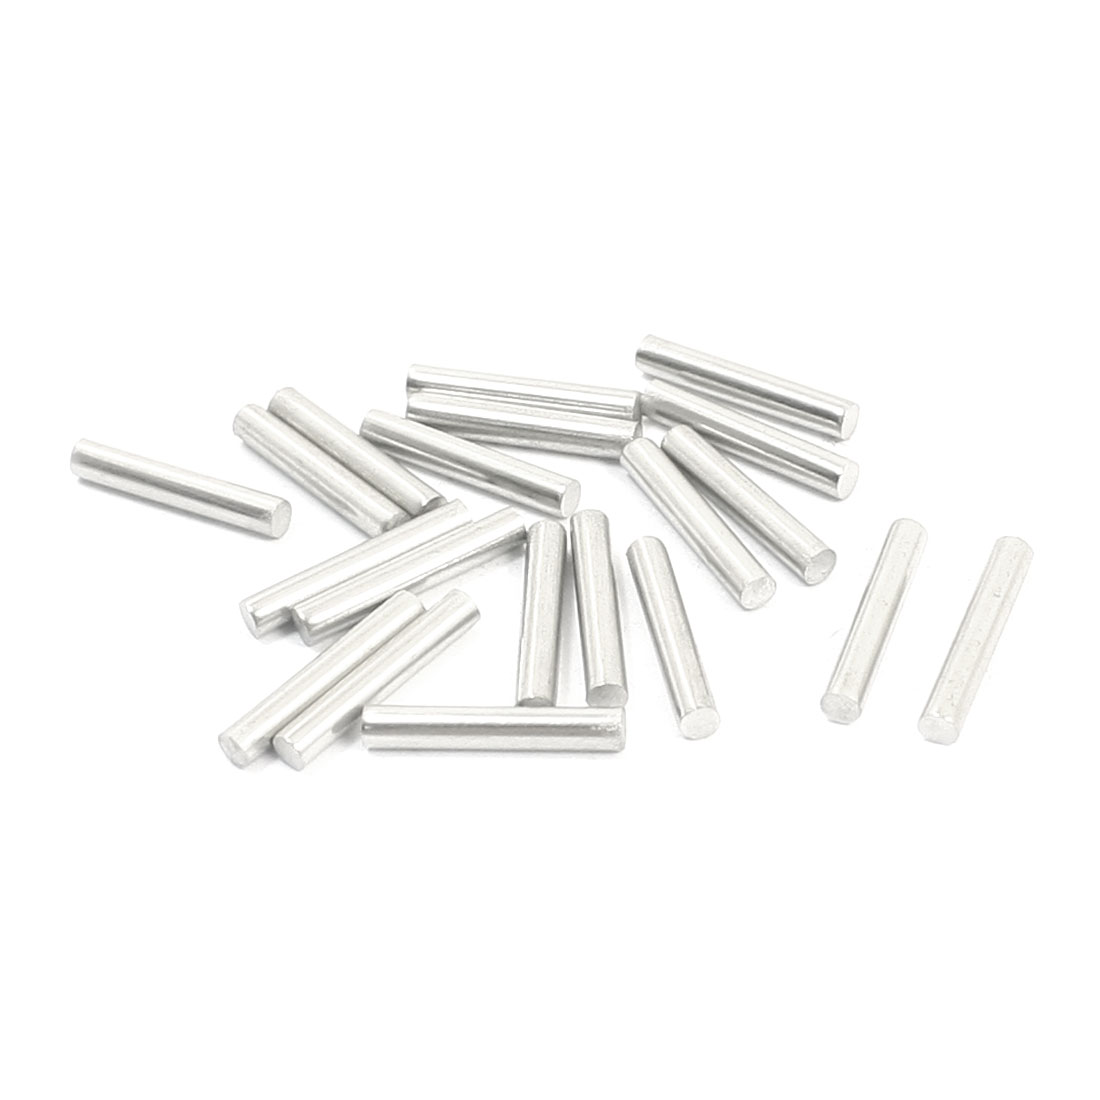 20PCS RC Car Toy Spare Part Stainless Steel Round Bar Shaft 15mmx2.5mm